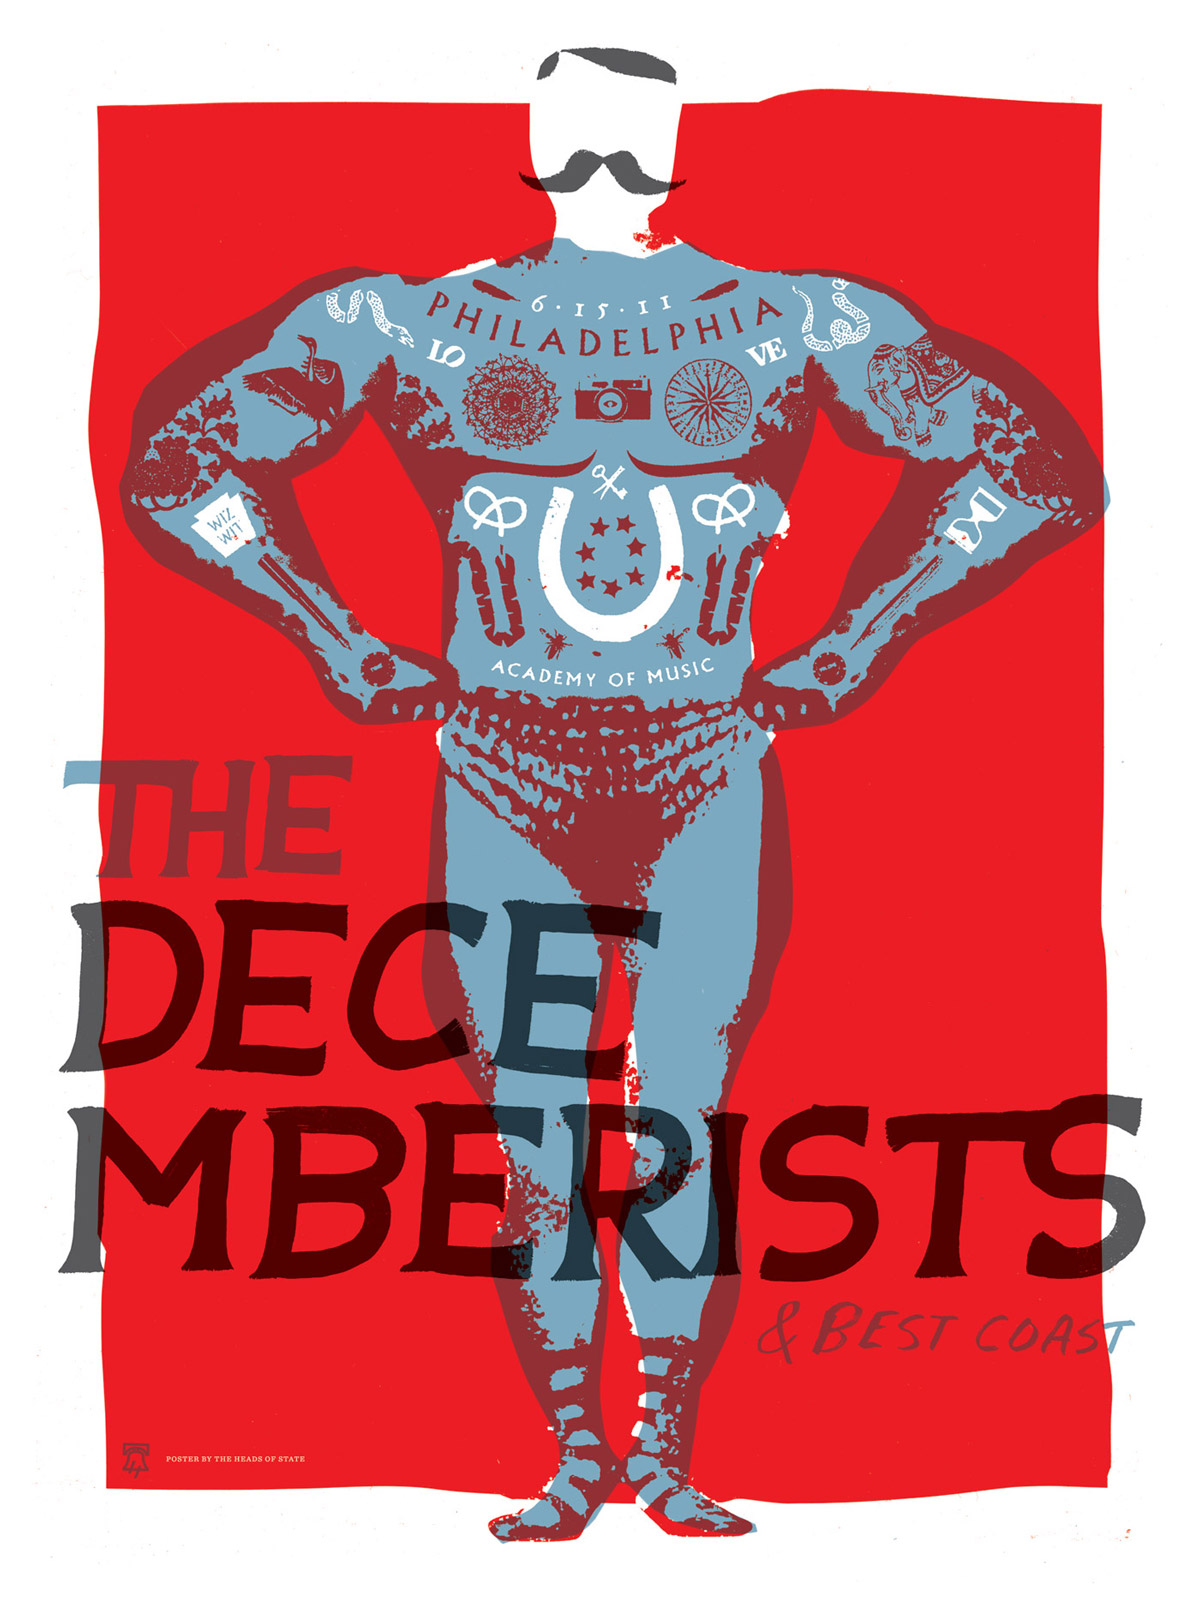 The Decemberists Gig Poster - The Heads of State